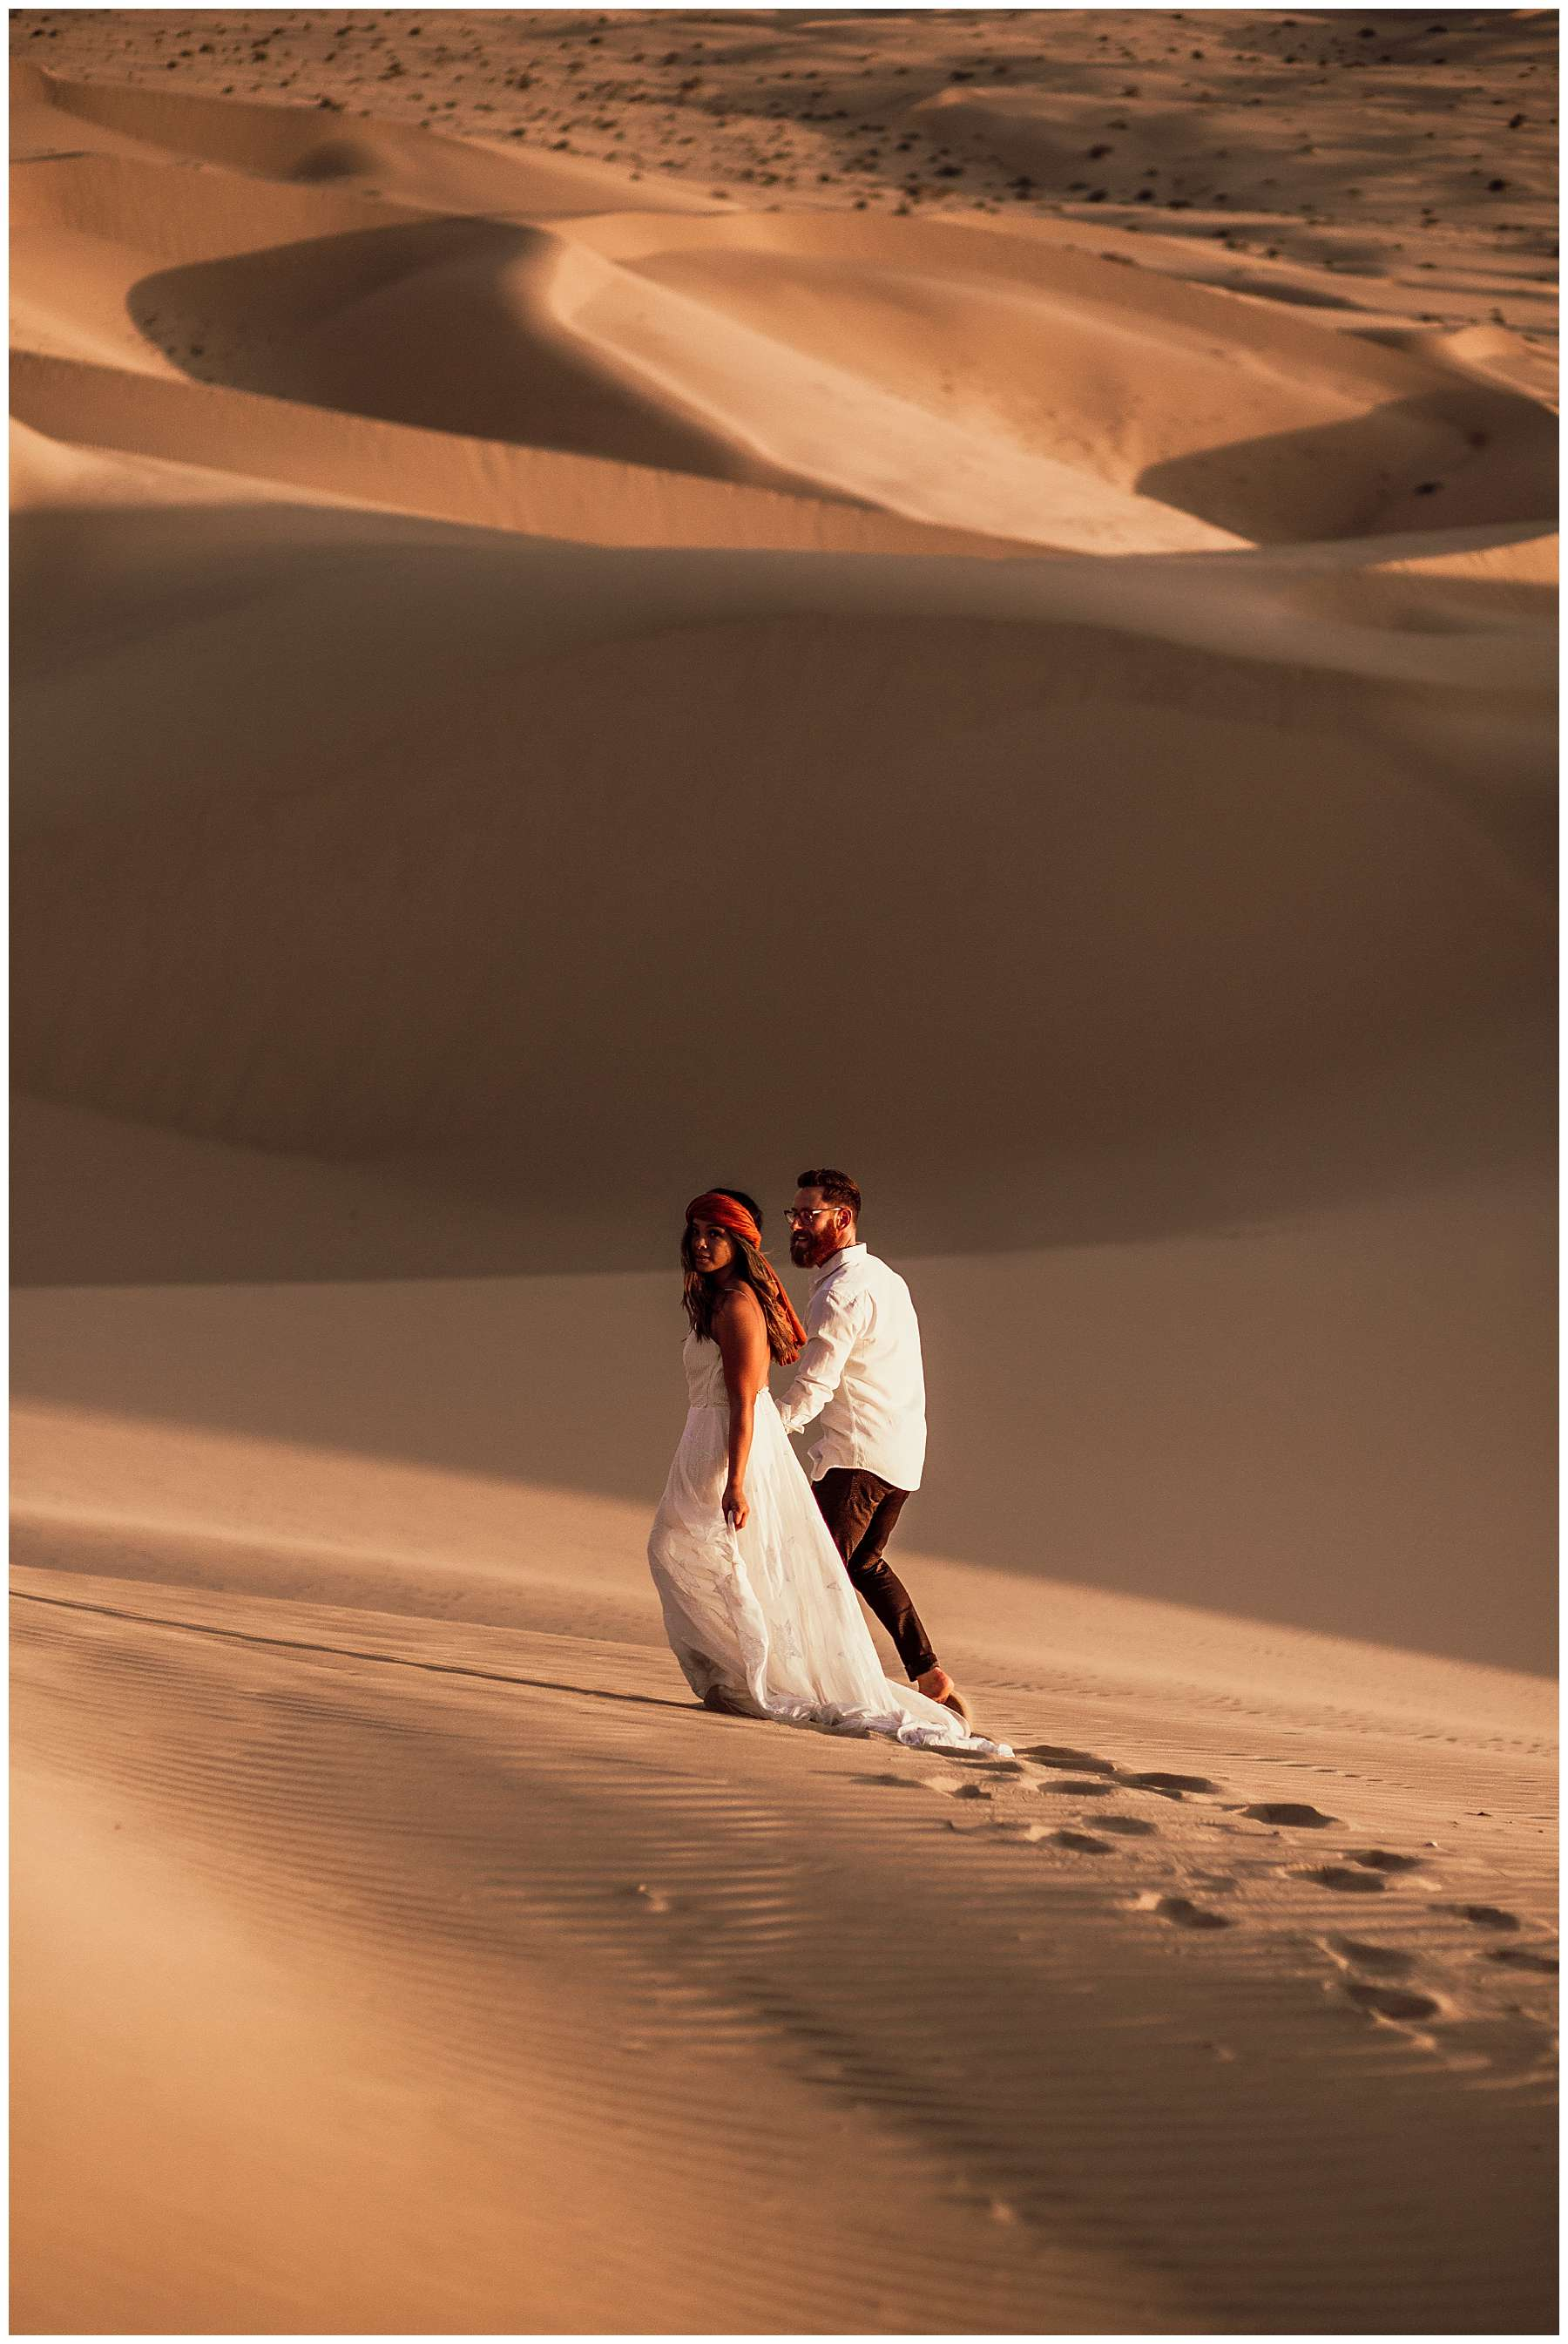 LOTTYH-Morocco-adventure-elopement_0002.jpg